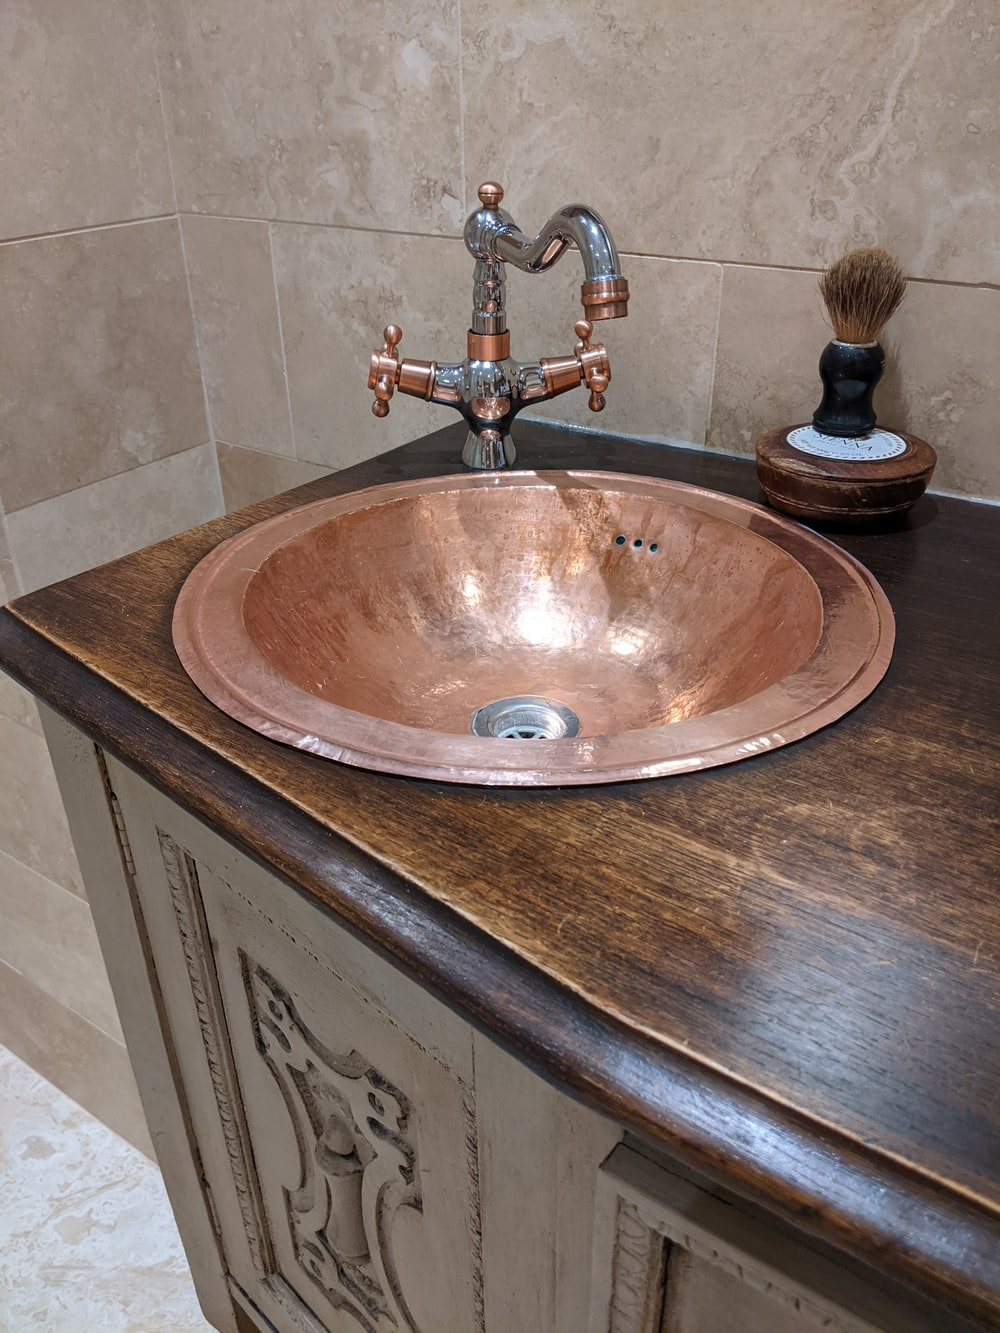 brown ceramic sink with stainless steel faucet